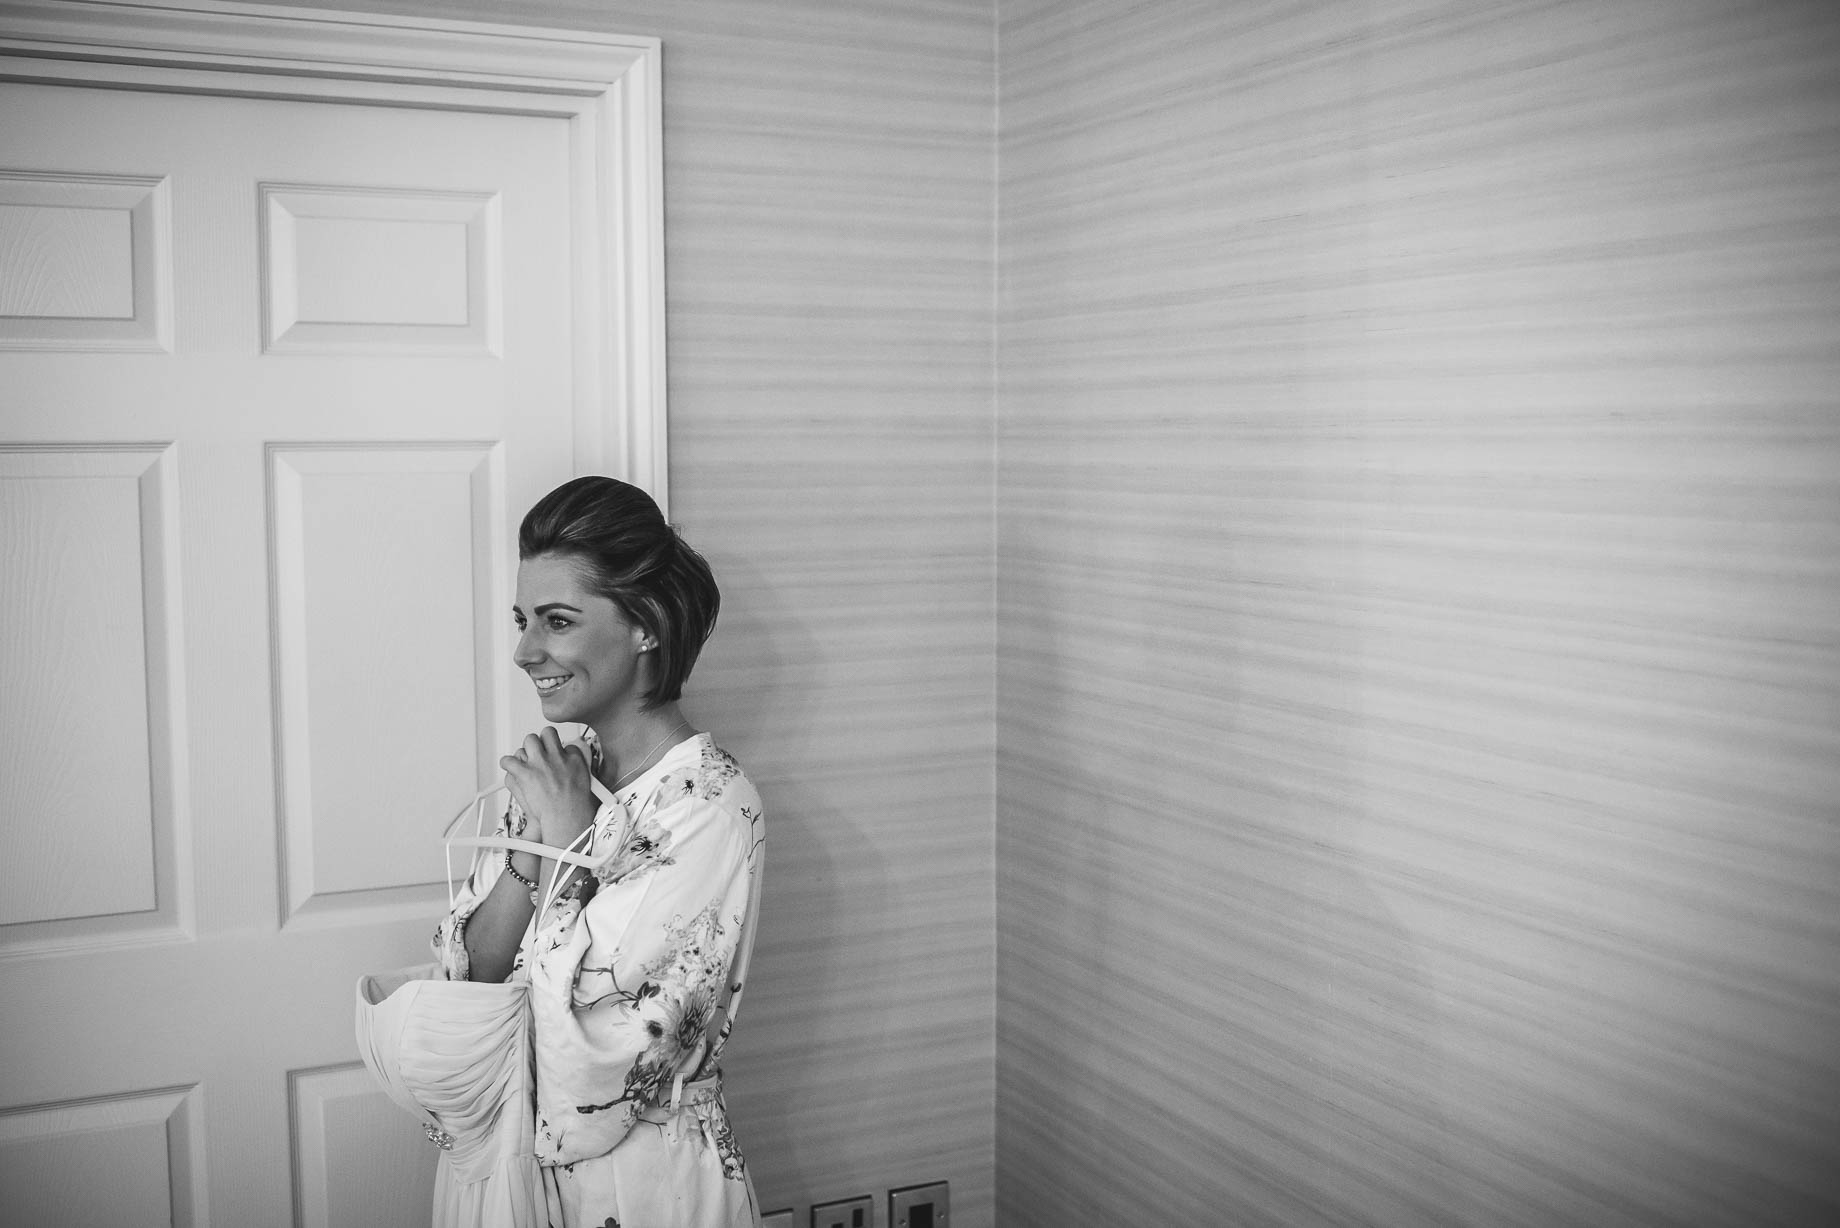 Luton Hoo wedding photography by Guy Collier Photography - Lauren and Gem (41 of 178)